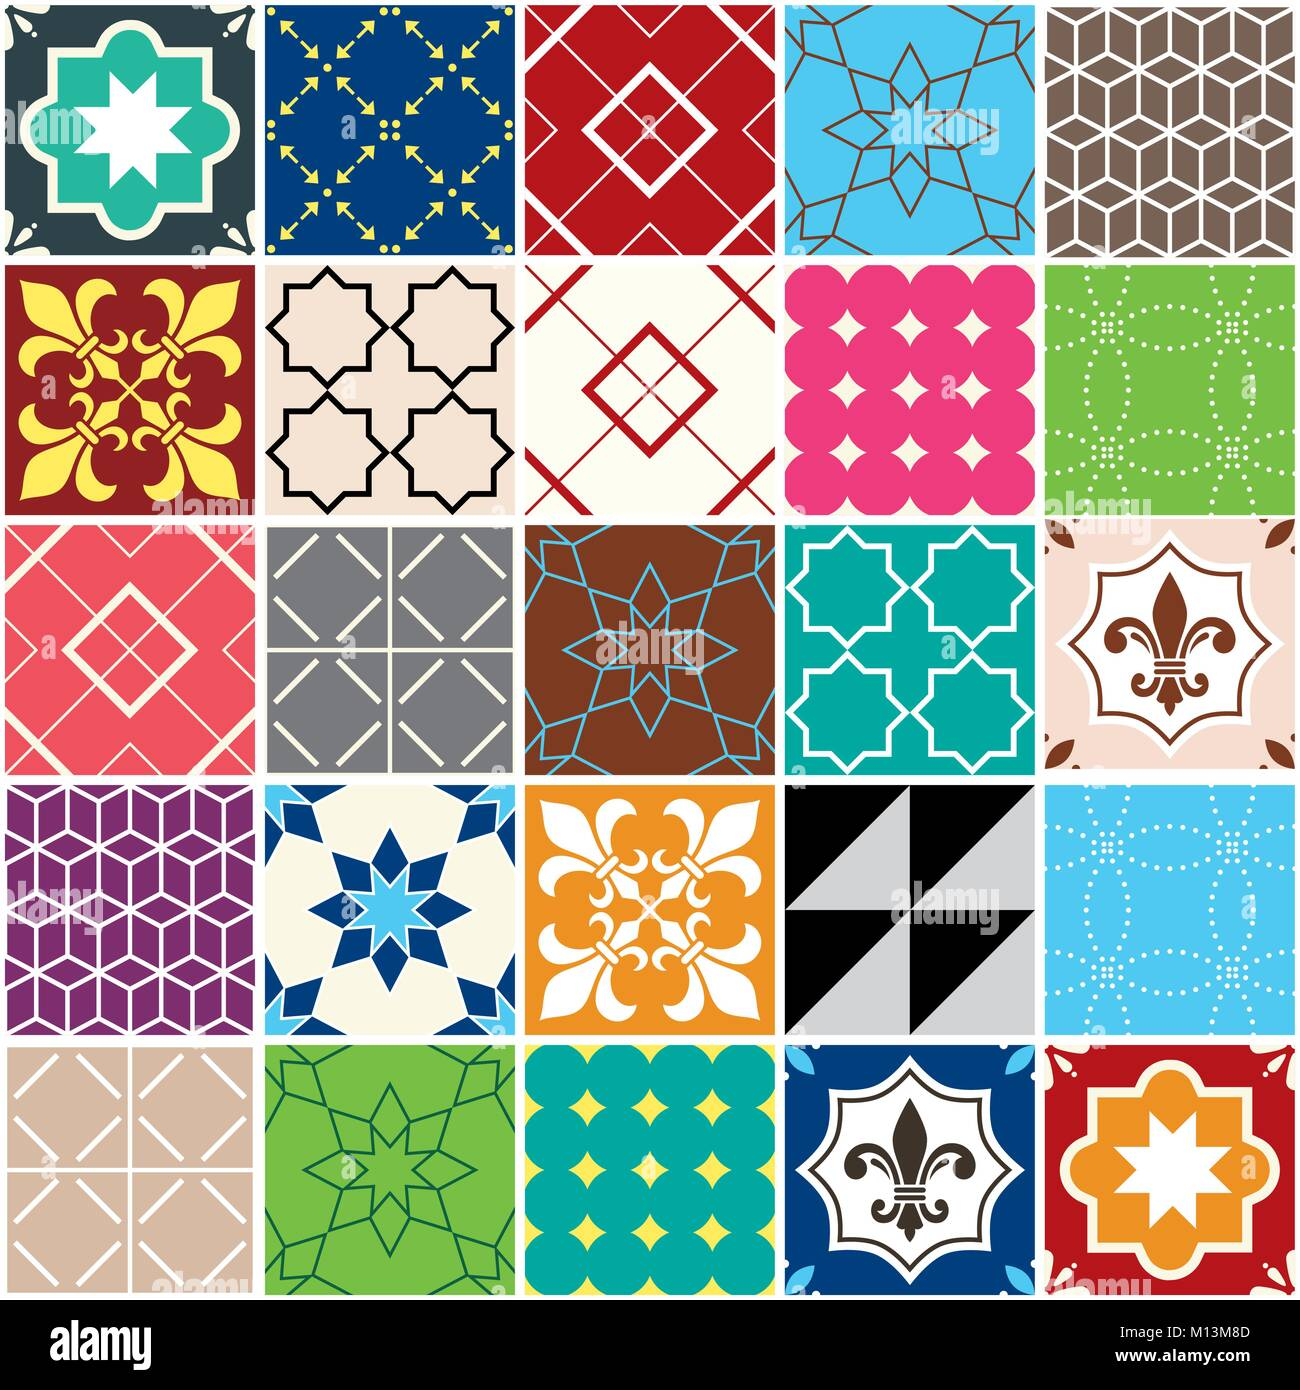 Seamless vector tile pattern, Azulejos tiles, Portuguese geometric and floral design - colorful patchwork - Stock Vector